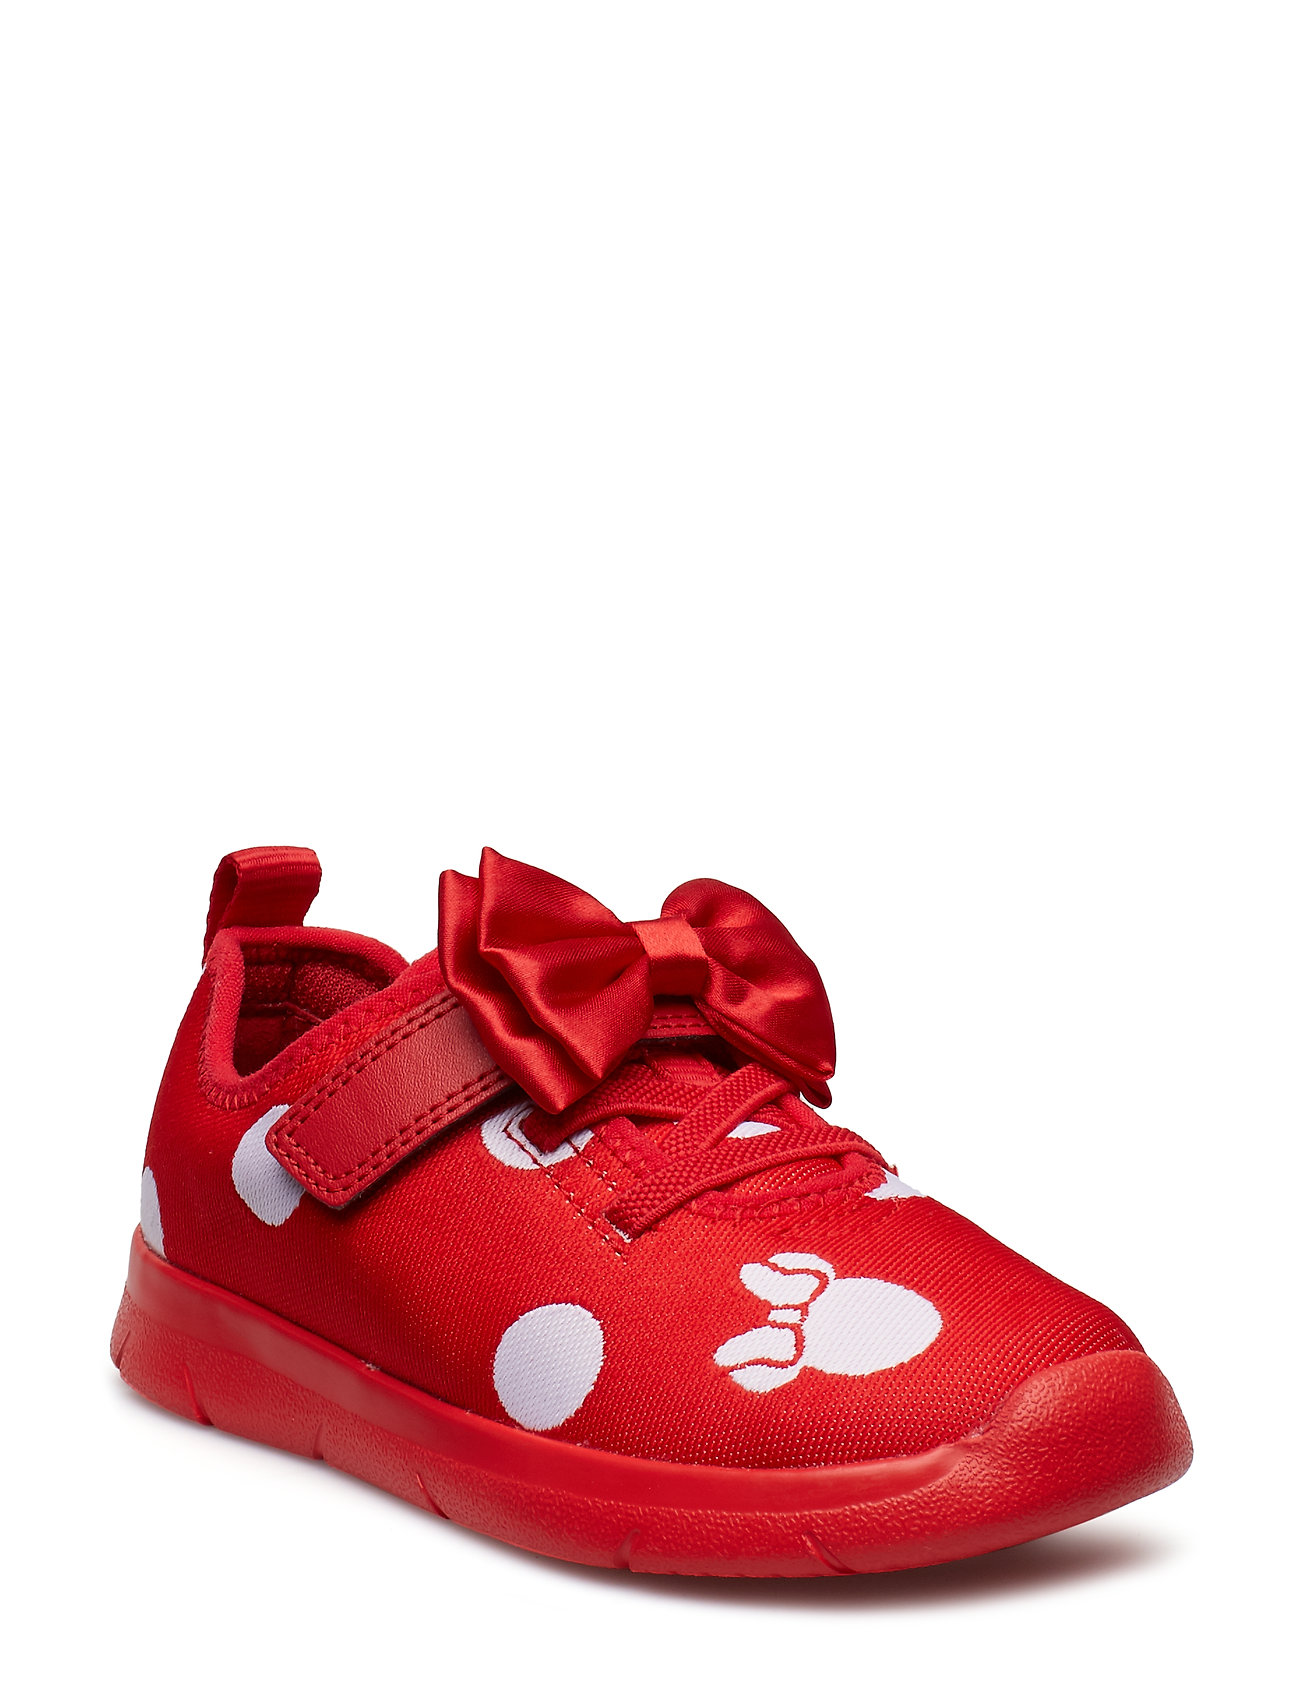 Clarks Ath Bow T - RED COMBI